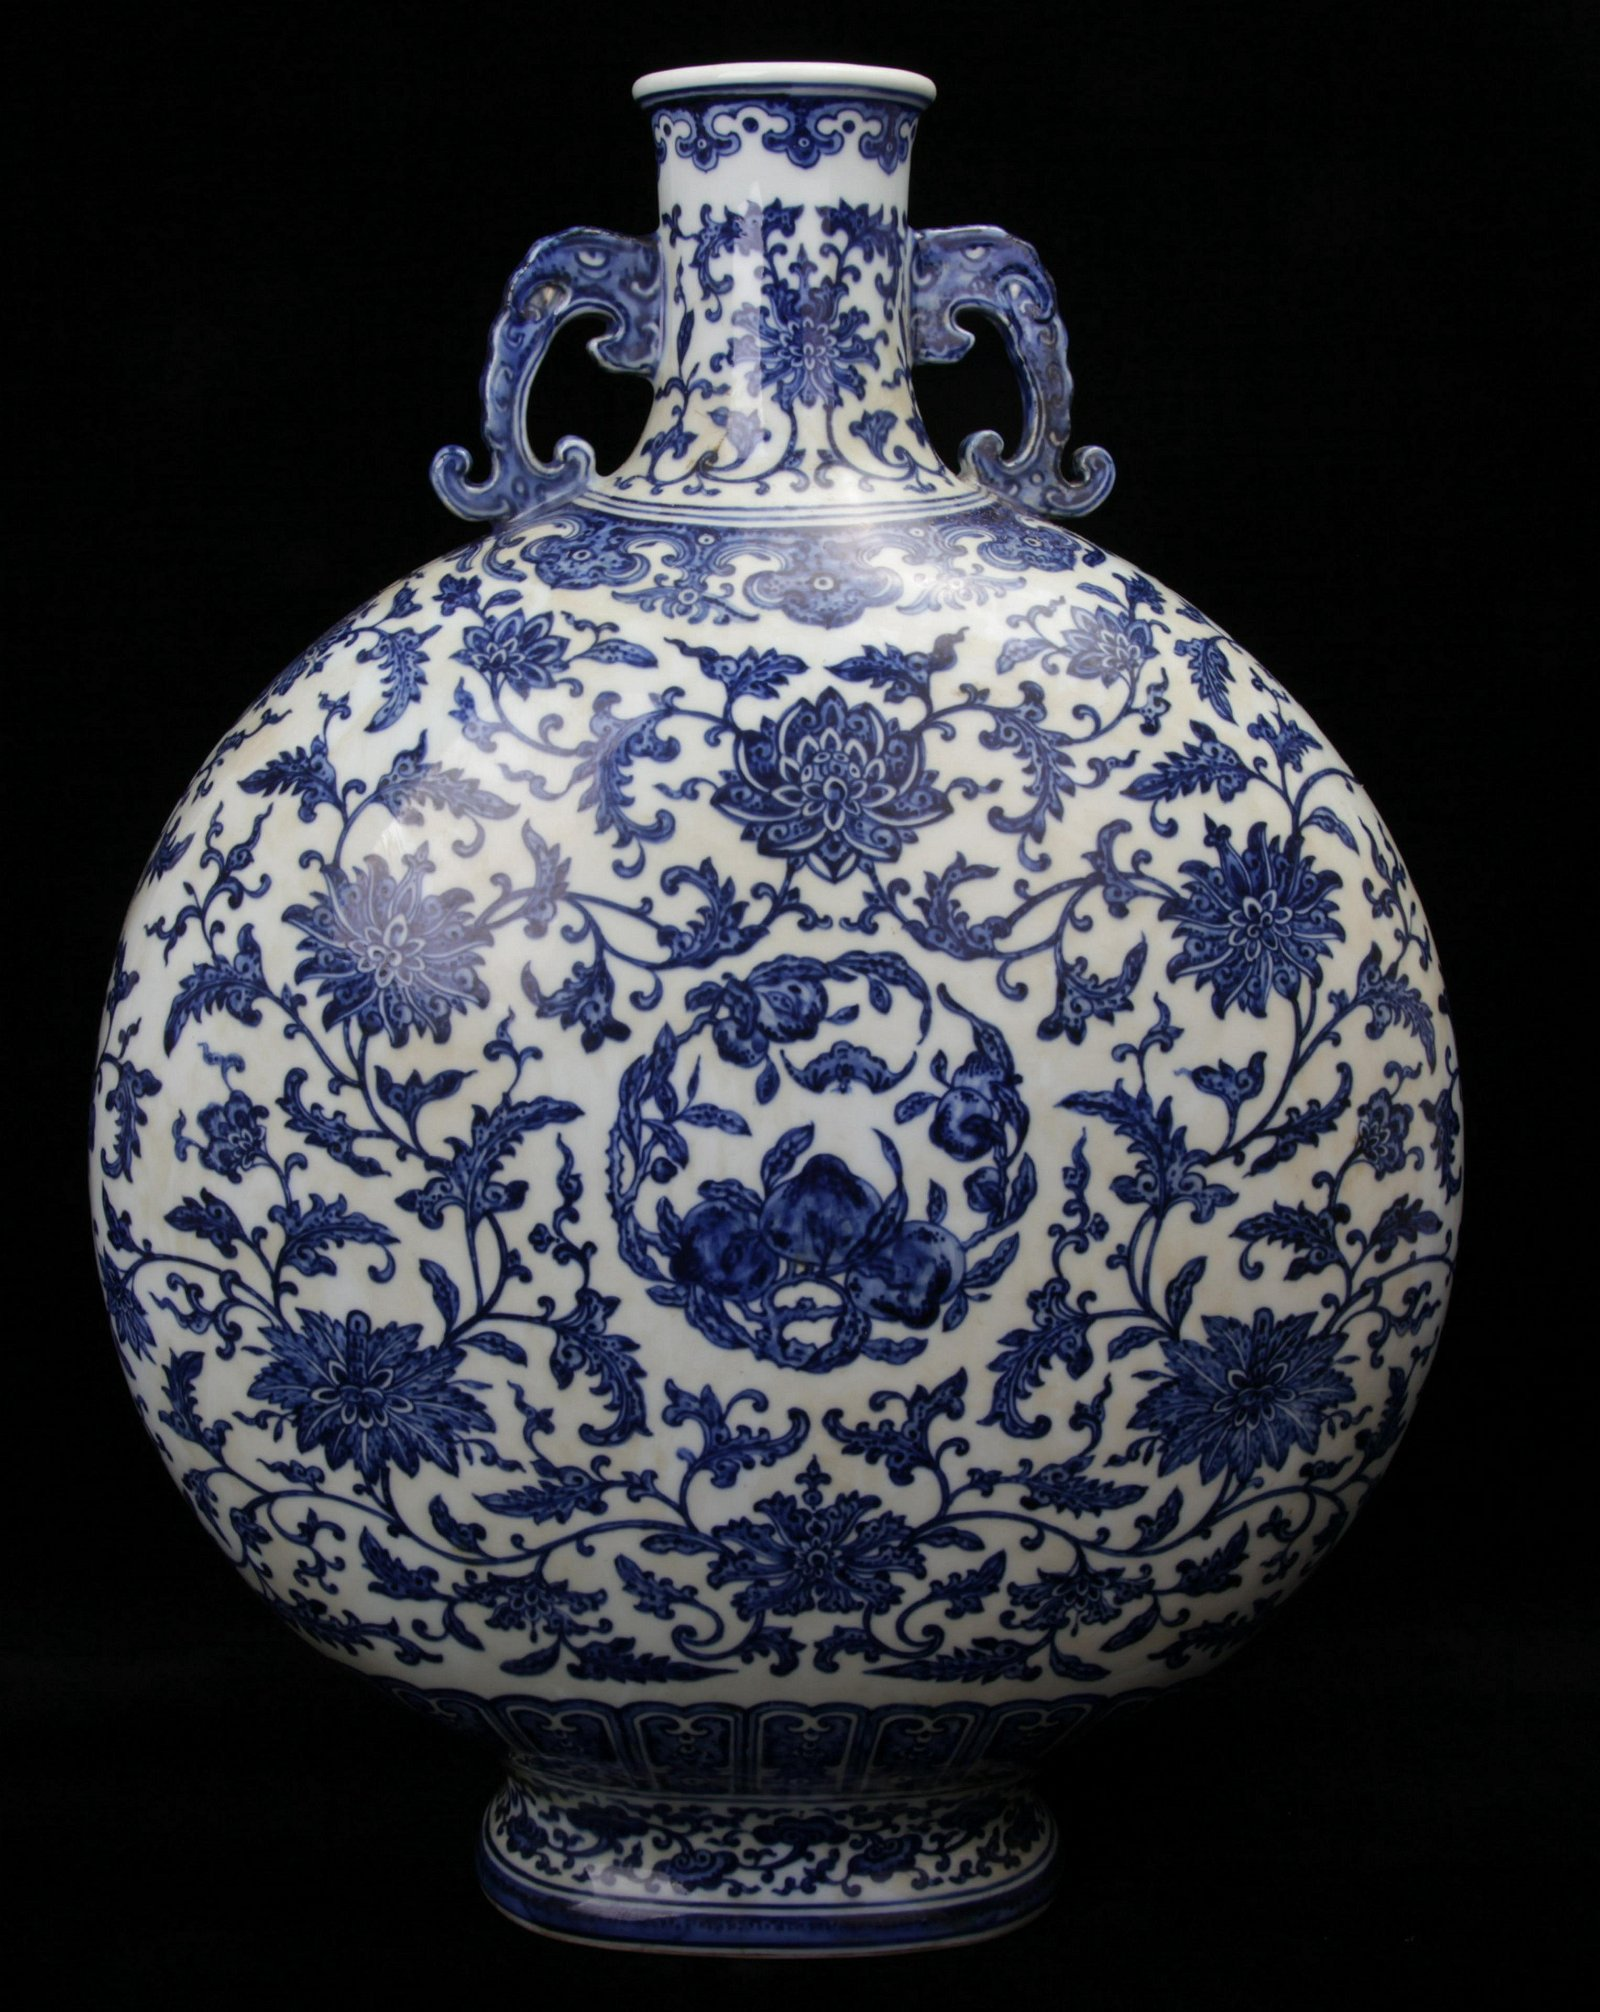 A Chinese Blue and White Porcelain Moon Flask